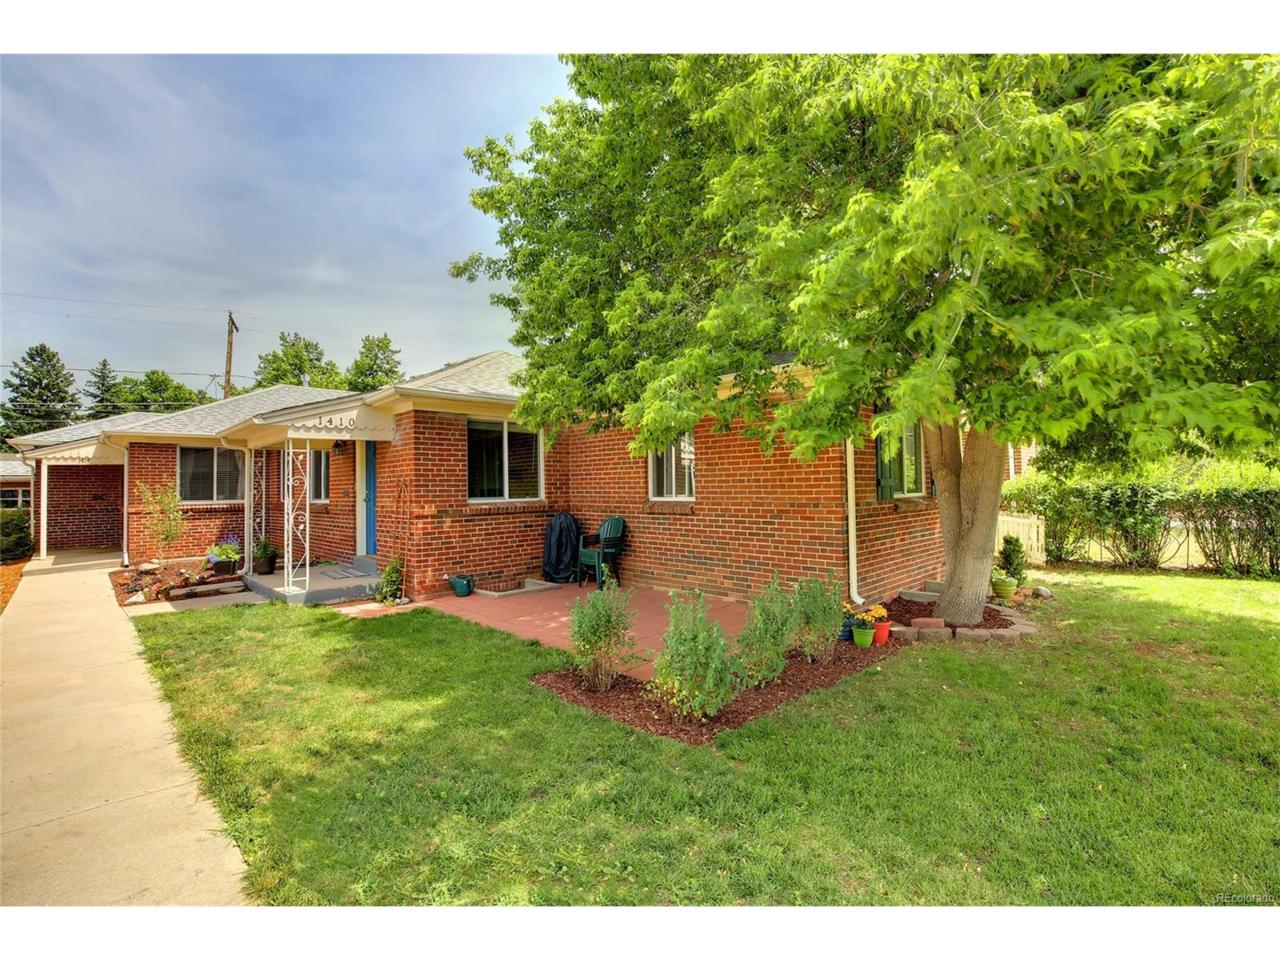 1410 Spruce Street, Denver, CO 80220 (MLS #8937224) :: 8z Real Estate